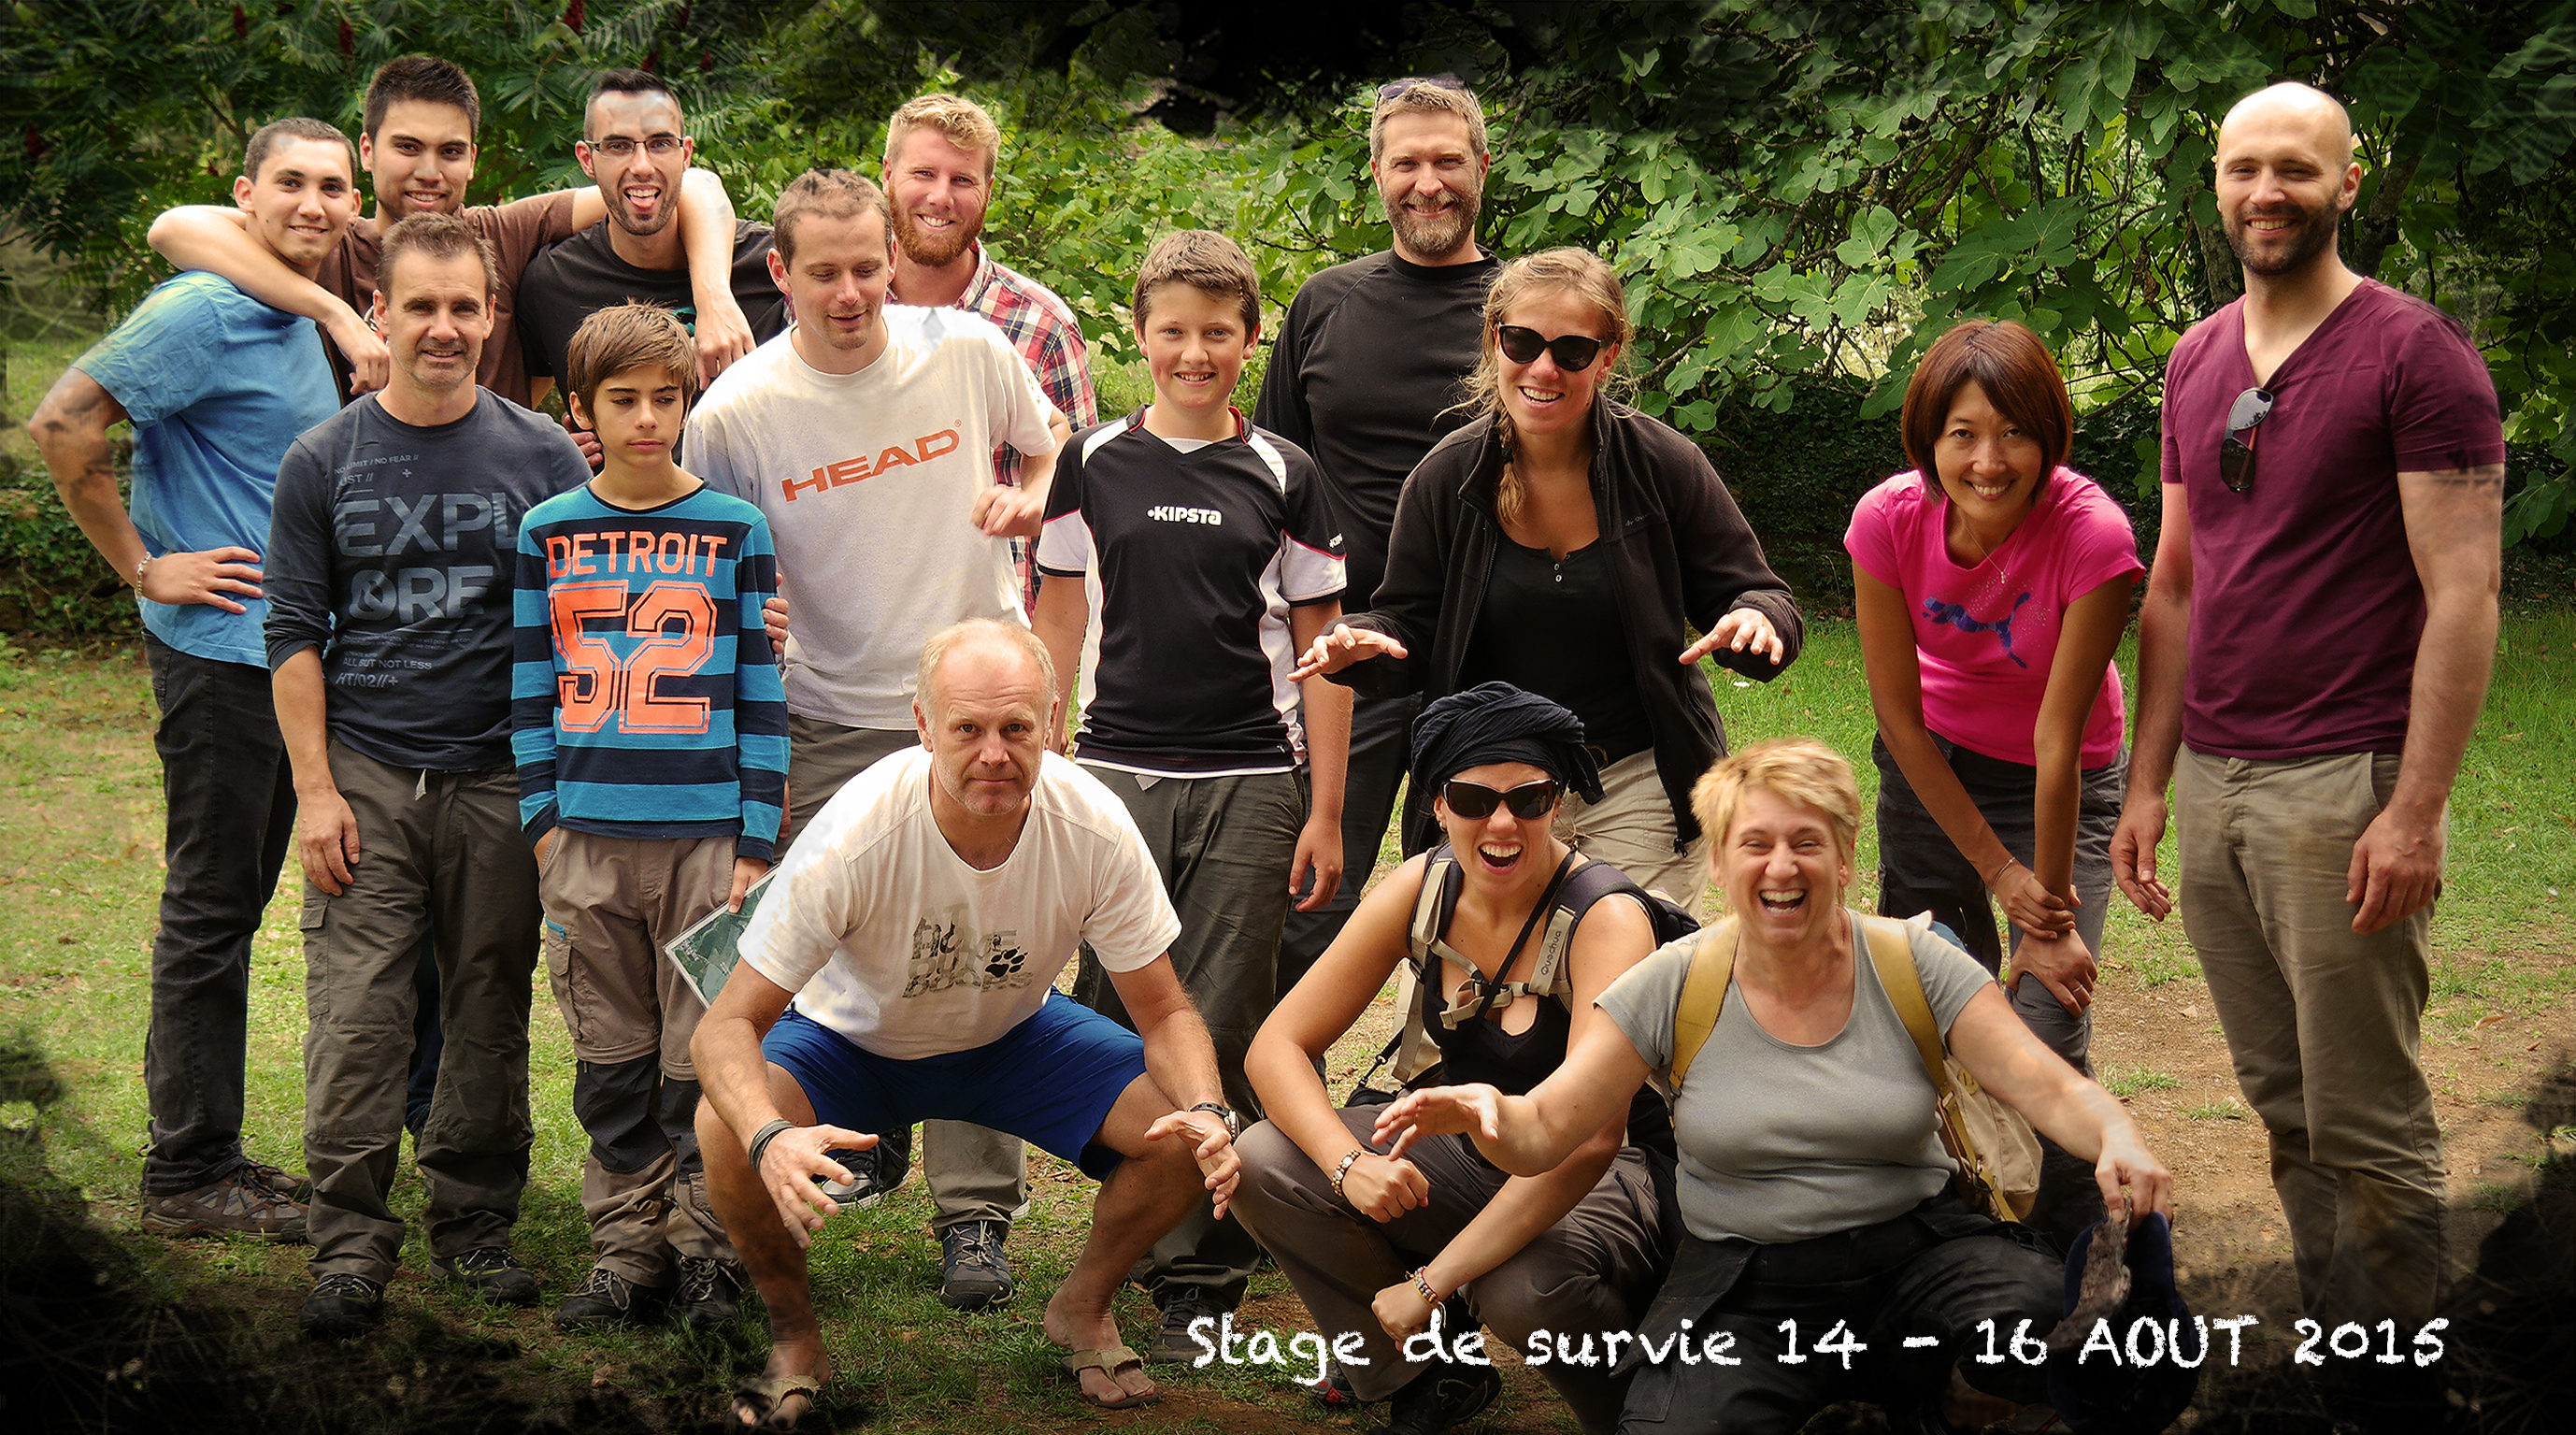 groupe 14-16 AOUT 2015.jpg